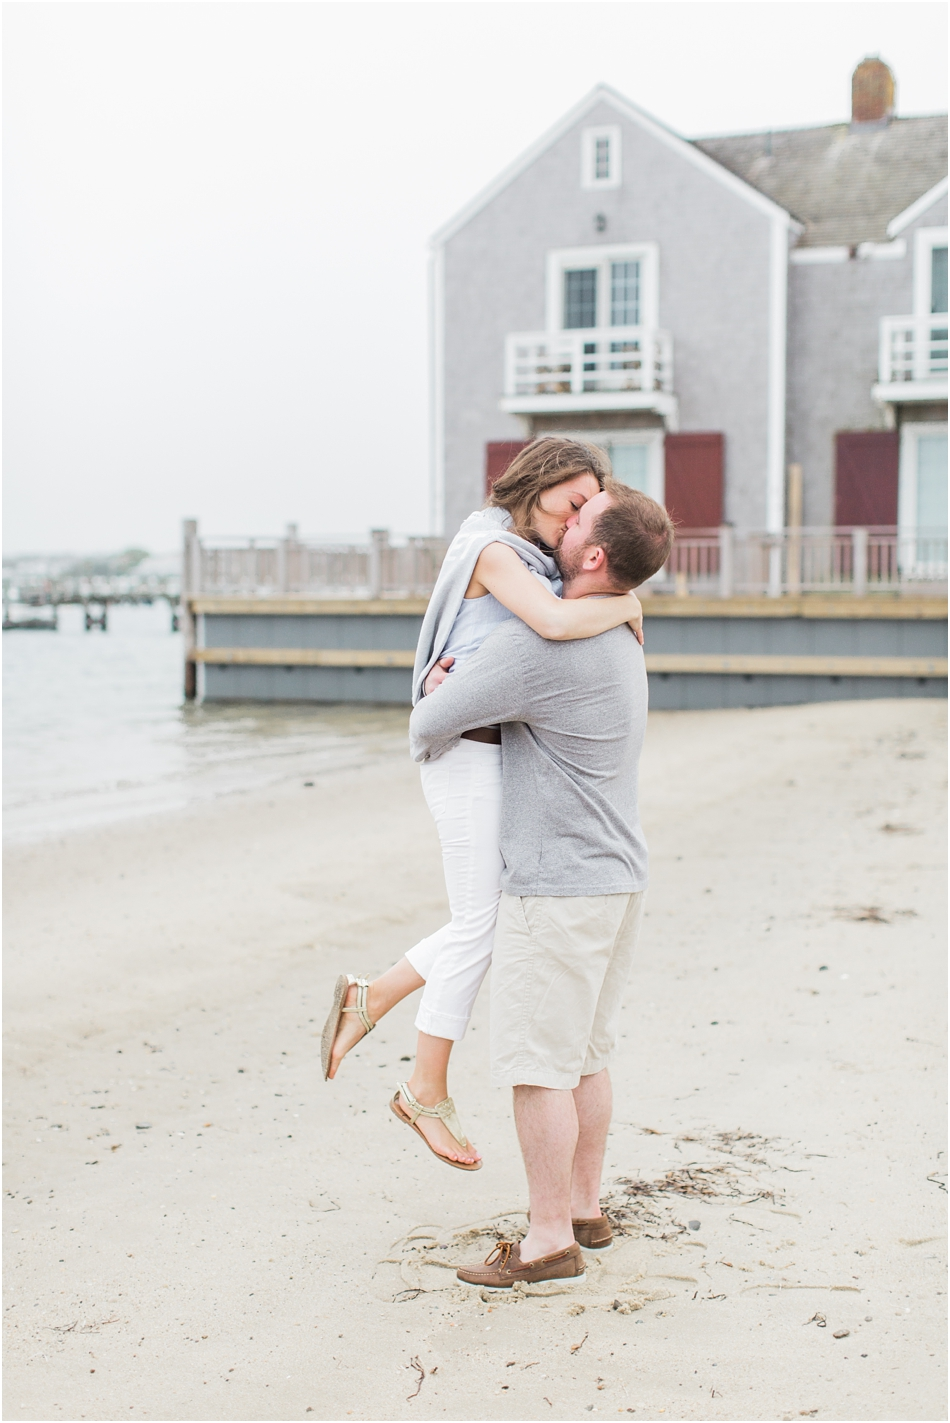 nantucket_engagement_session_downtown_bike_basket_breezer_downtown_8_boston_massachusetts_cape_cod_new_england_wedding_photographer_Meredith_Jane_Photography_photo_1439.jpg